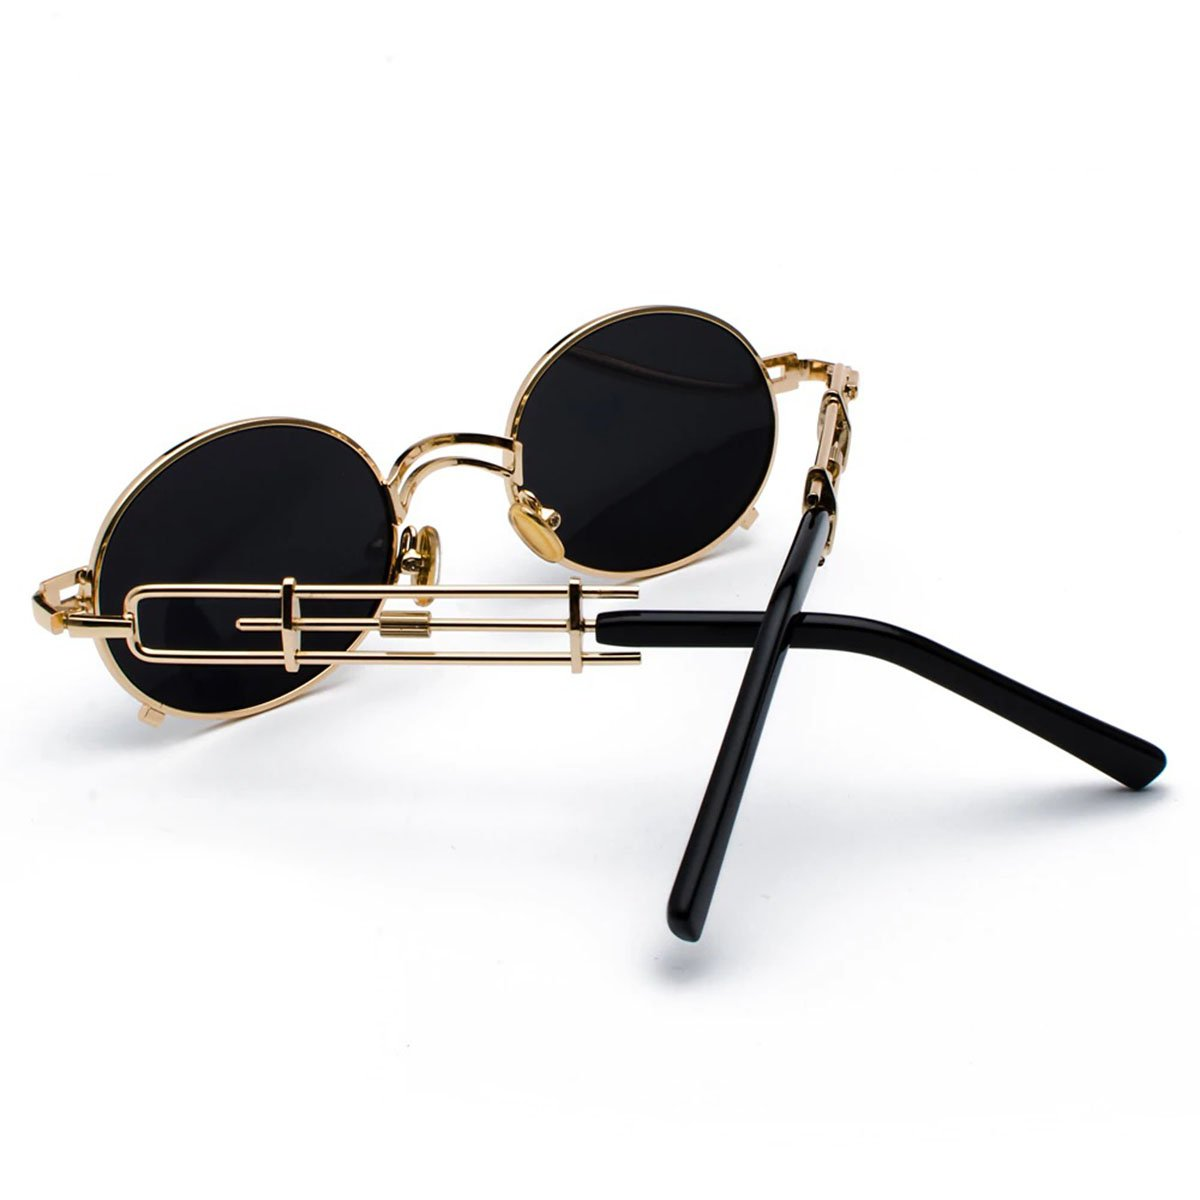 Peekaboo Retro Round Vintage Sunglasses for Women